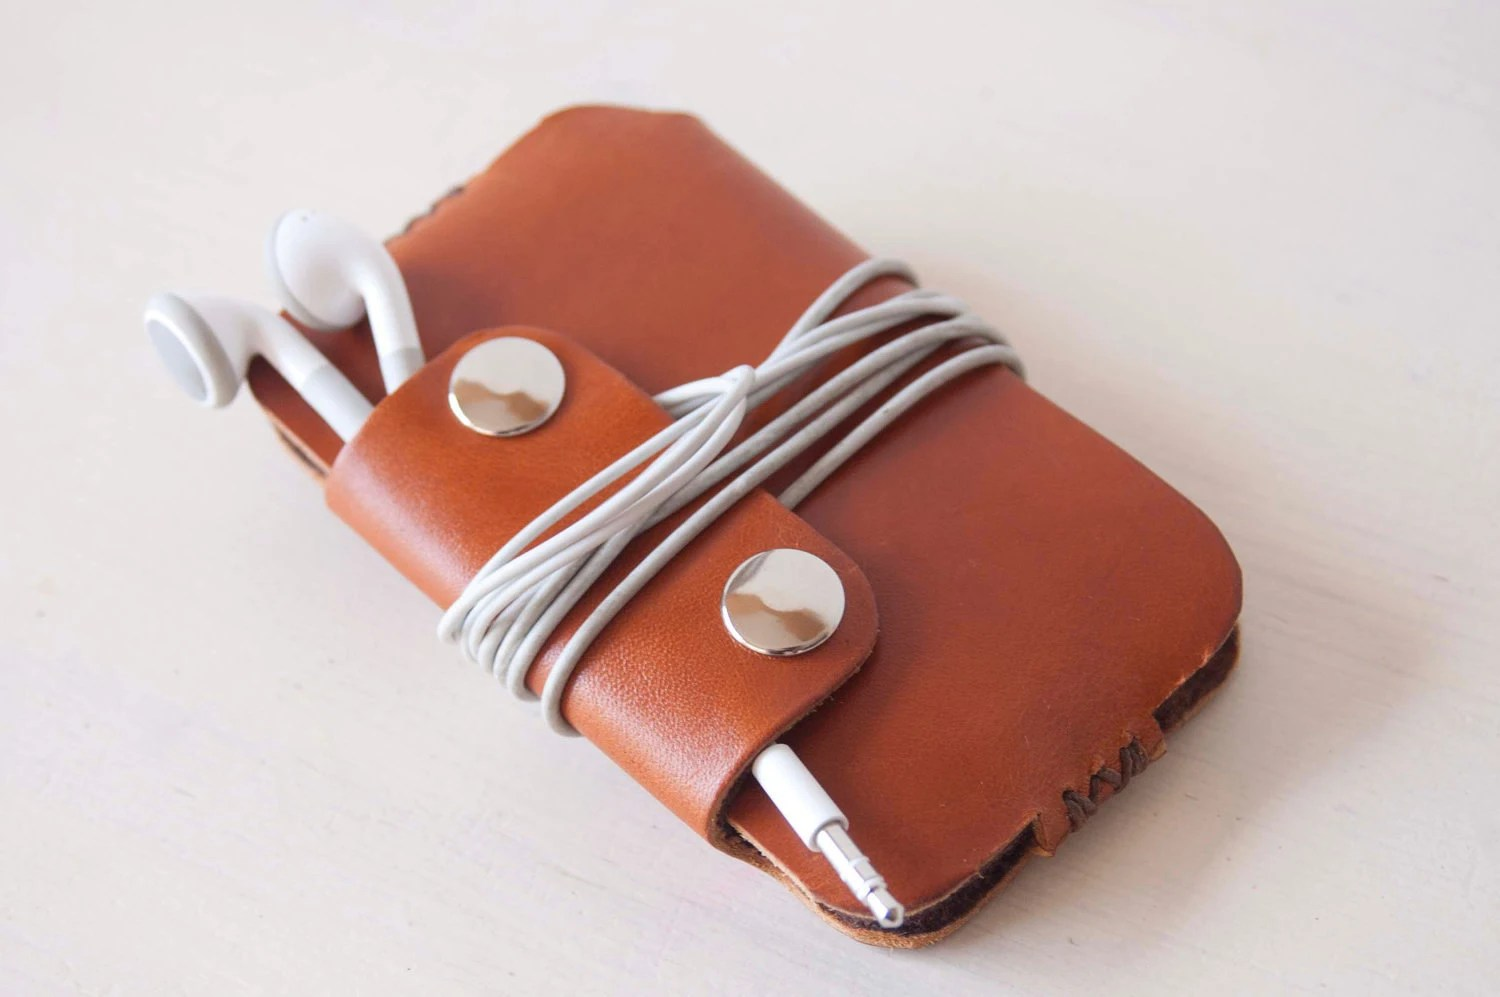 IPhone 5 case, IPhone 5 sleeve, IPod Touch case, IPhone 3 case, IPhone 4 case, IPhone 4S case - Brown leather sleeve - santileather